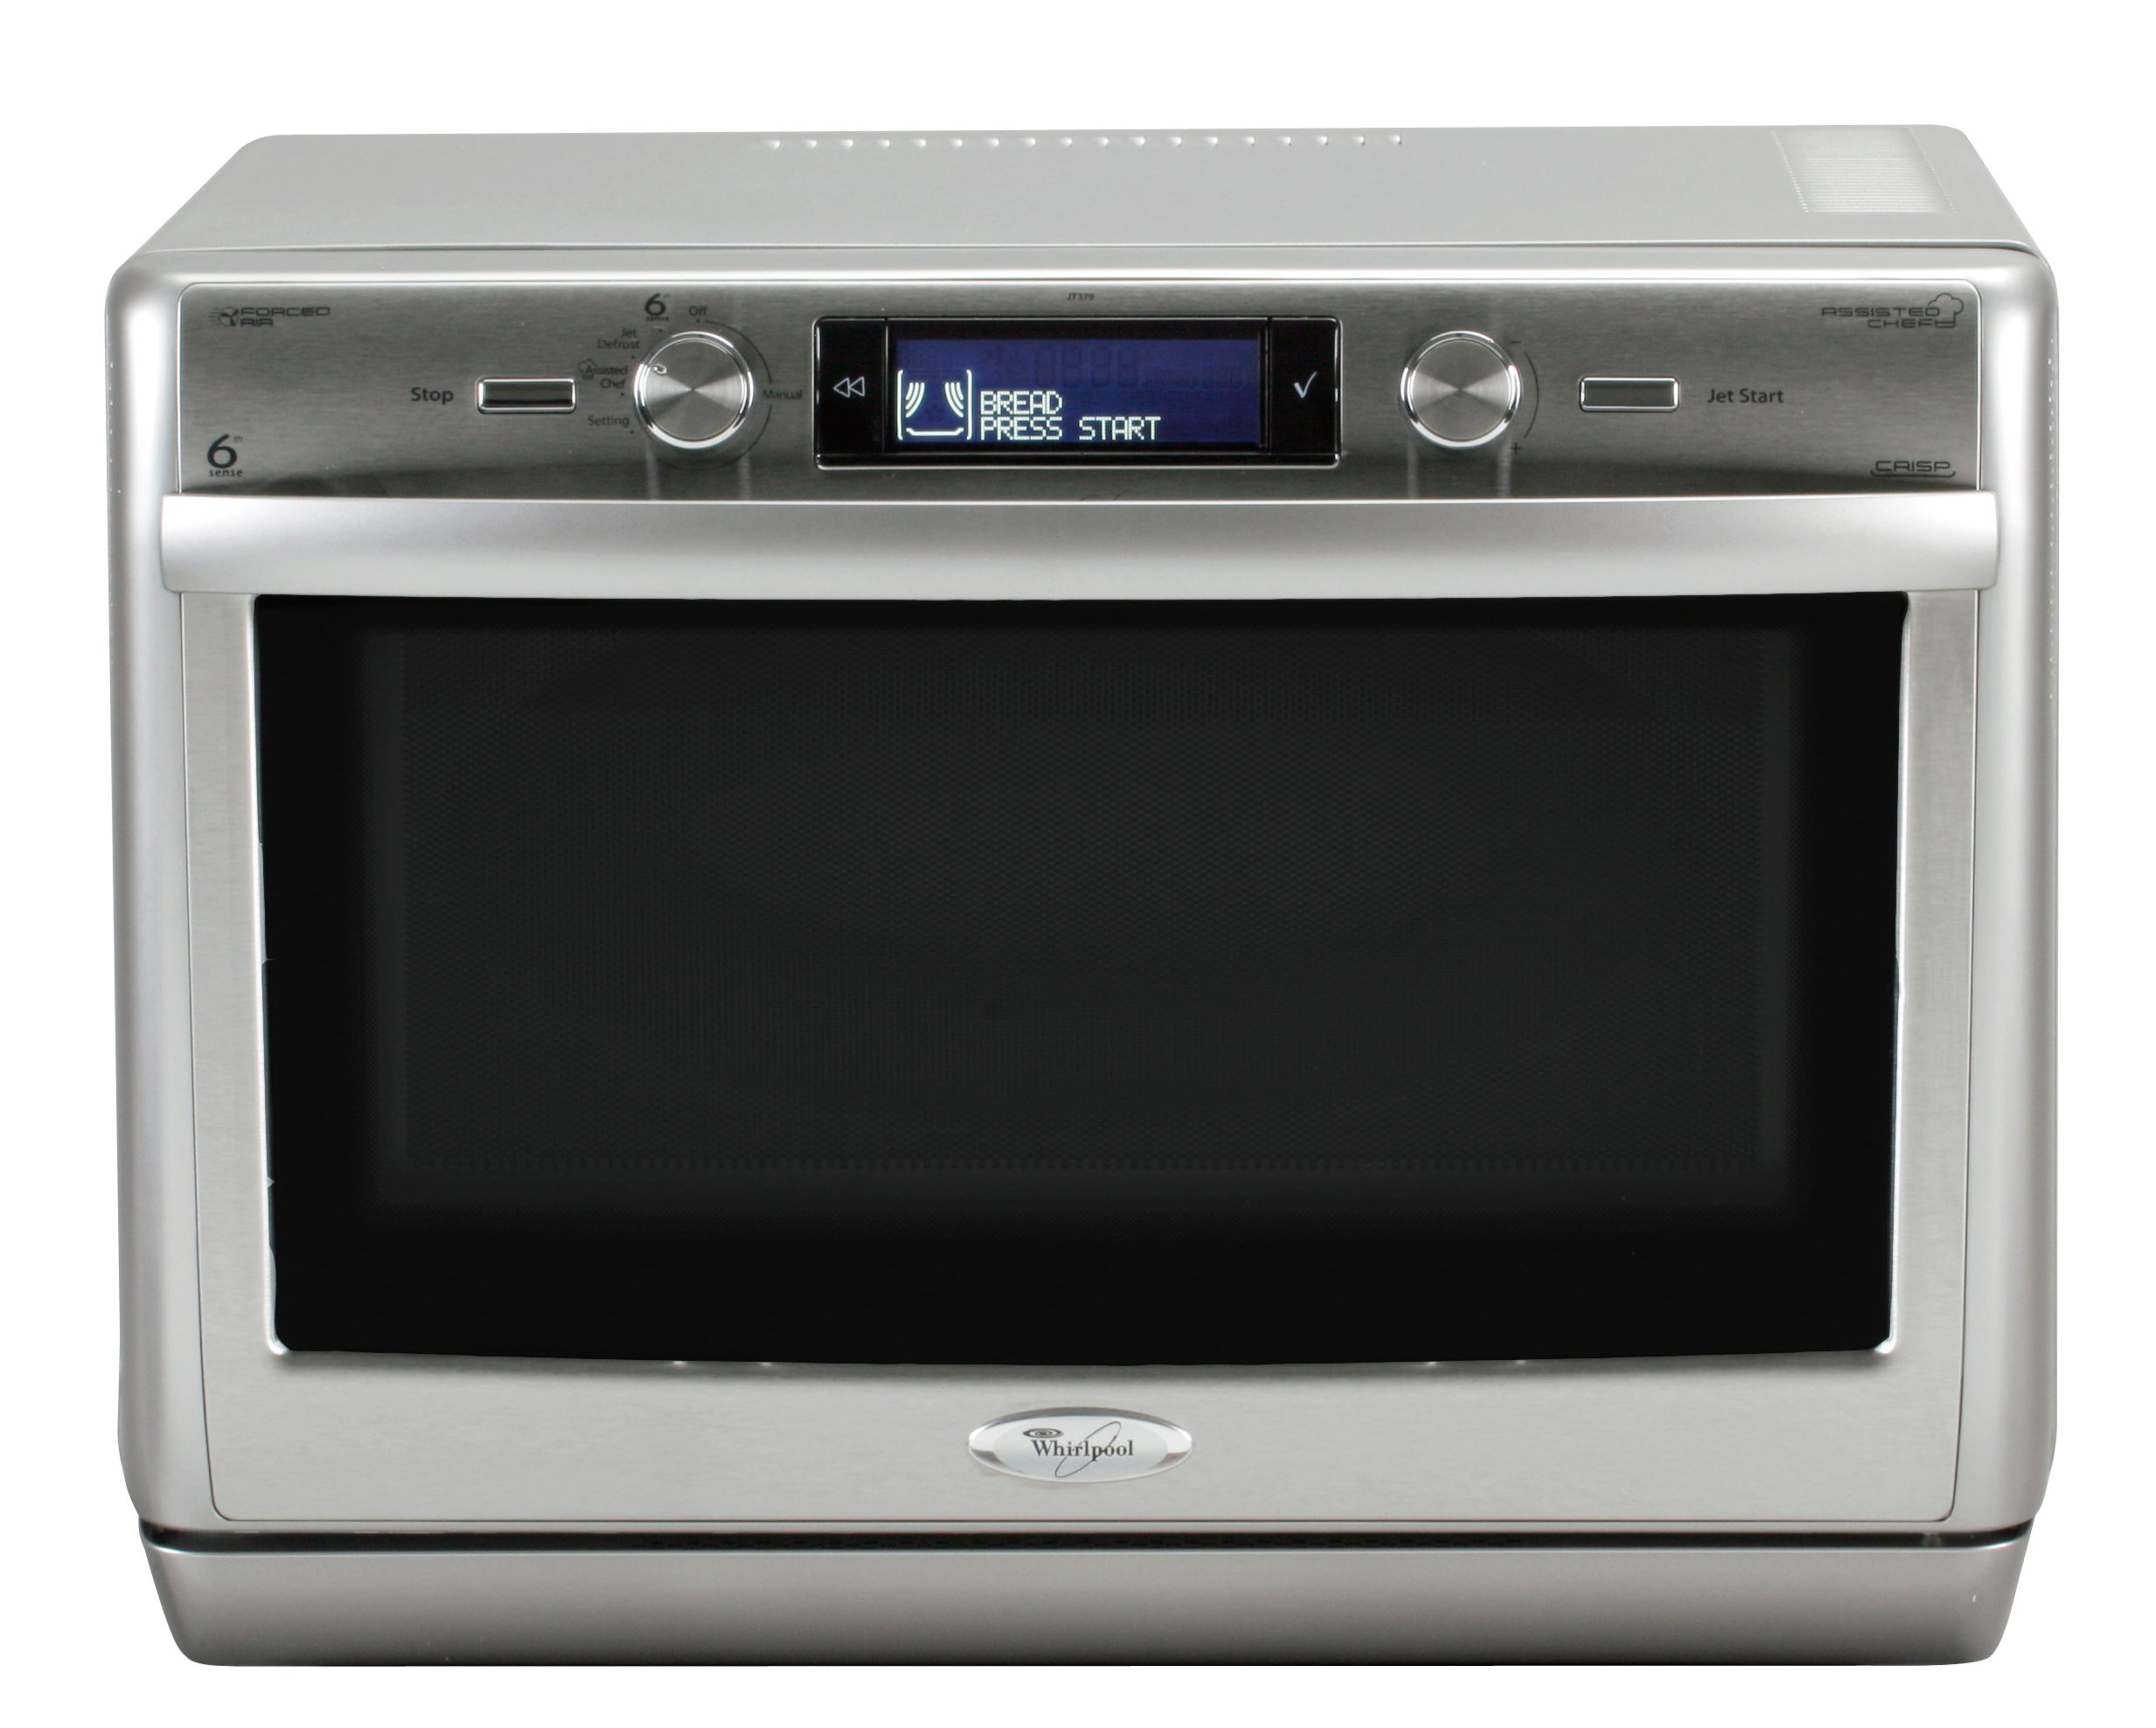 Whirlpool JT379 – Forno Microonde